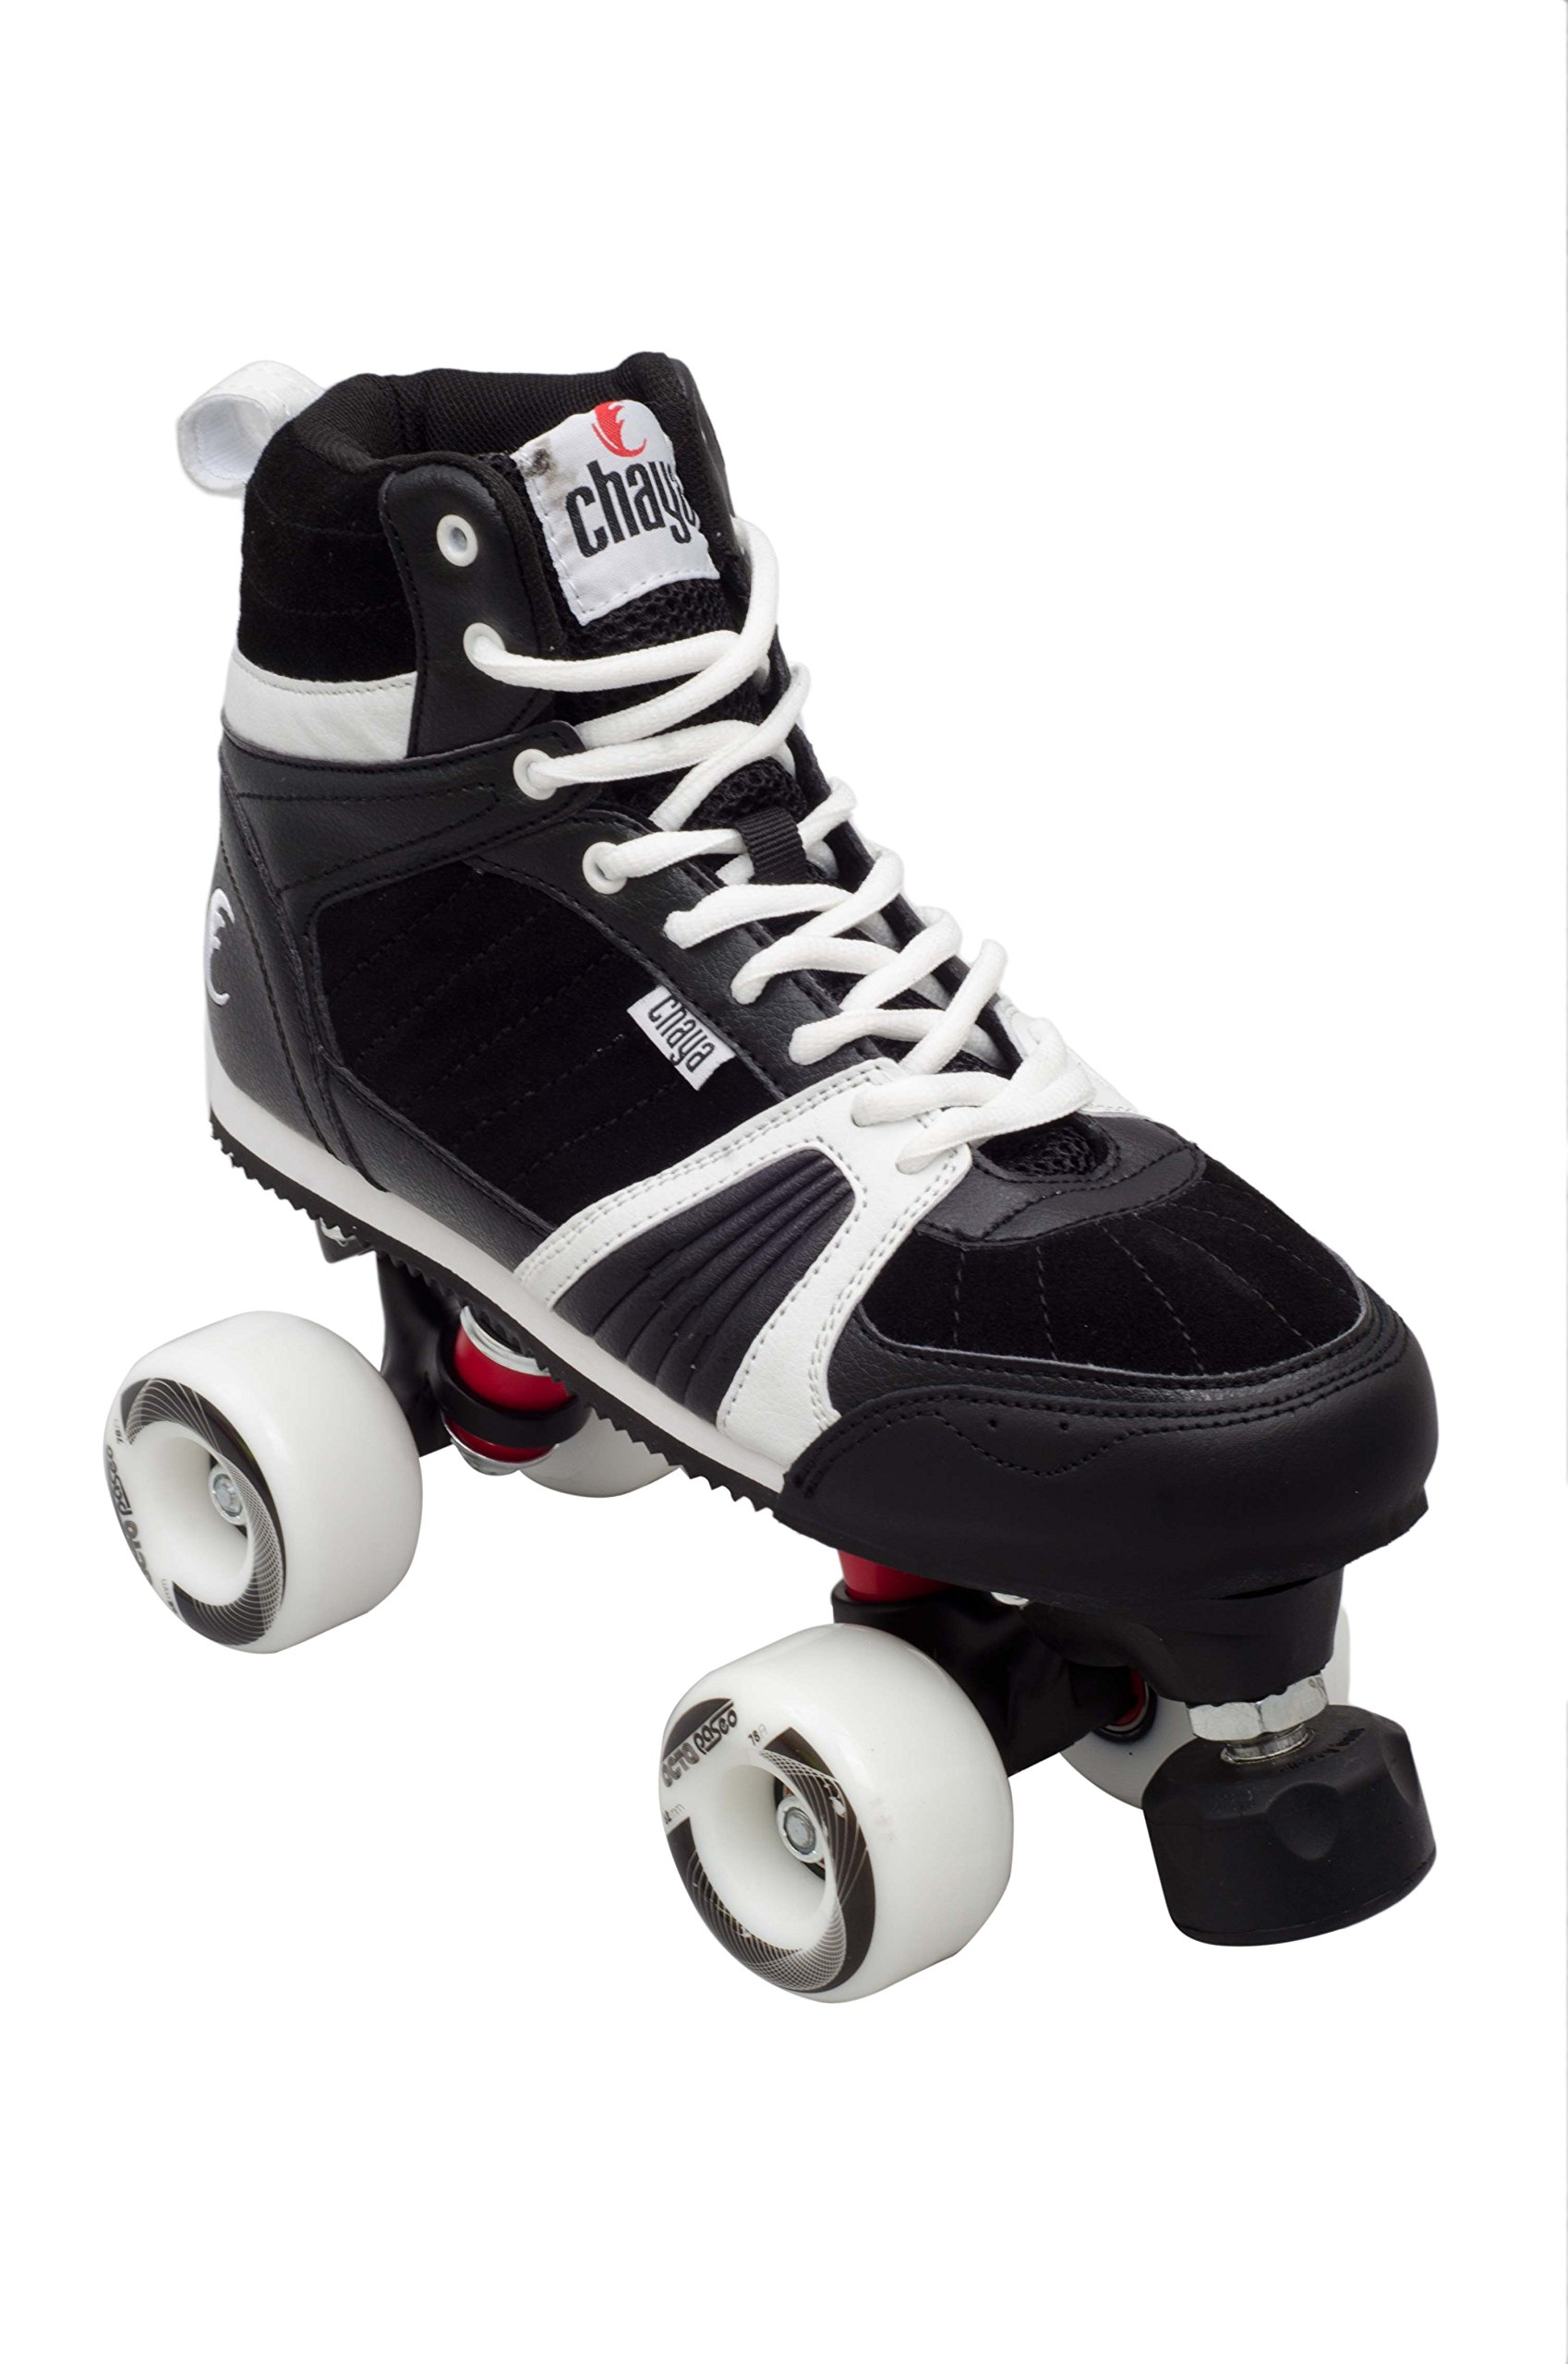 Chaya Jump Black Outdoor Park Roller Skate with Dual Center Mounting (Euro 39 / US 7)